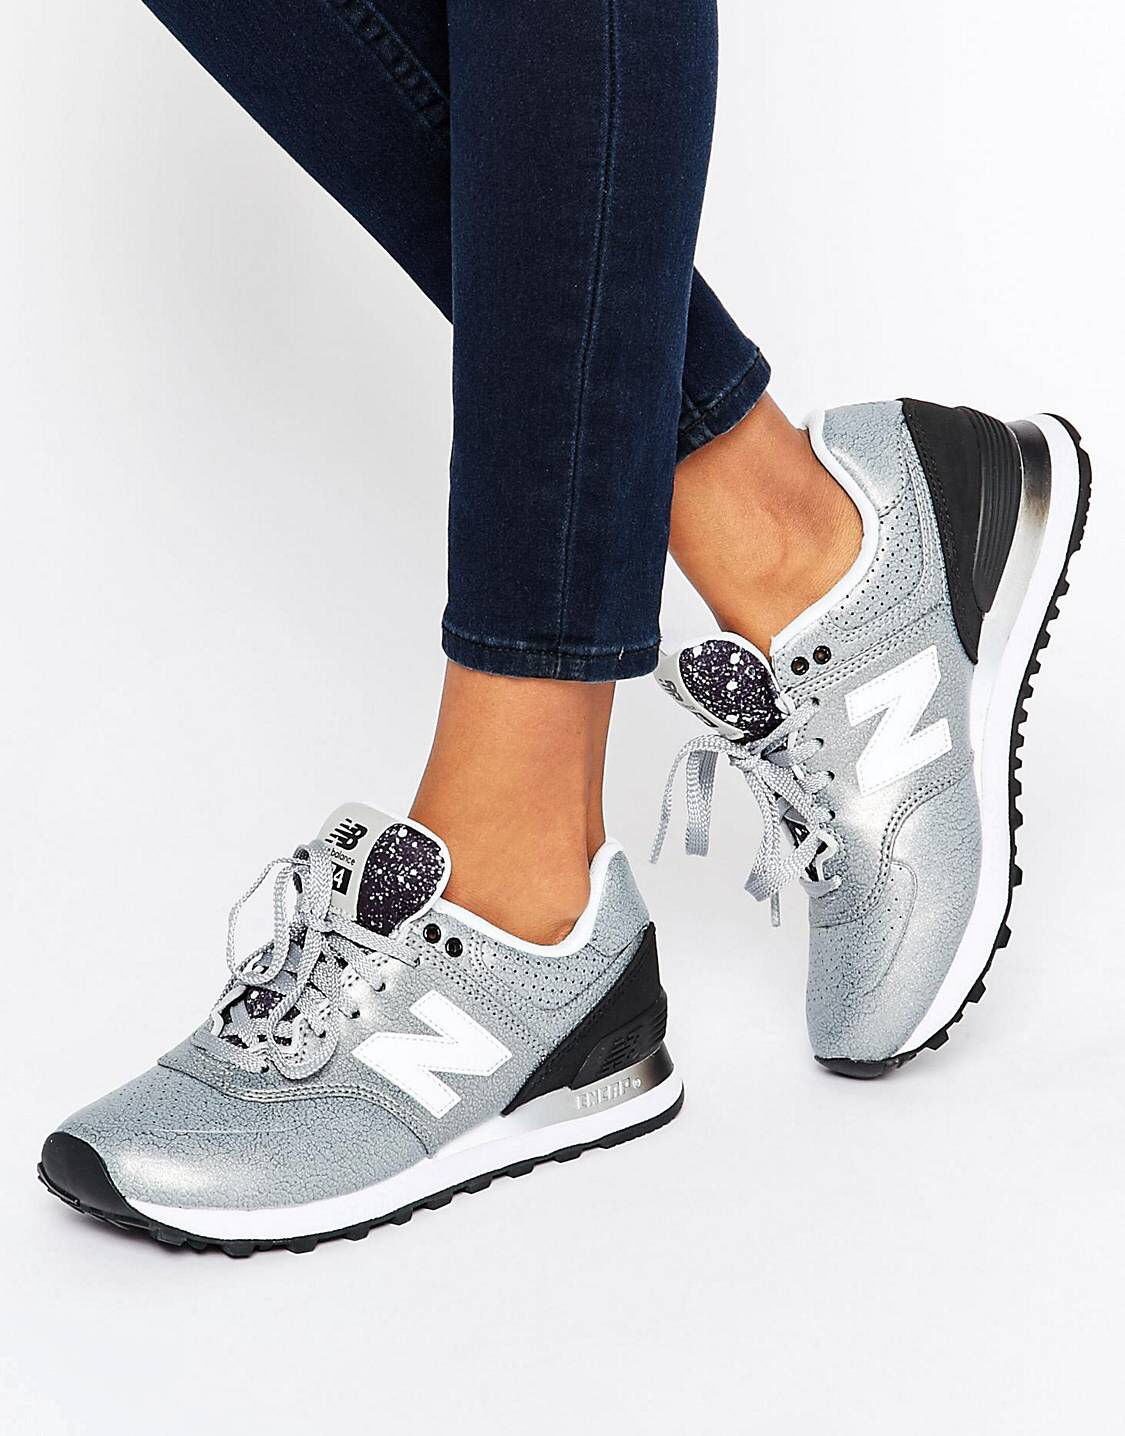 sélection premium cd4af 8f123 New Balance 574 Silver Metallic | Japan in 2019 | Sneakers ...